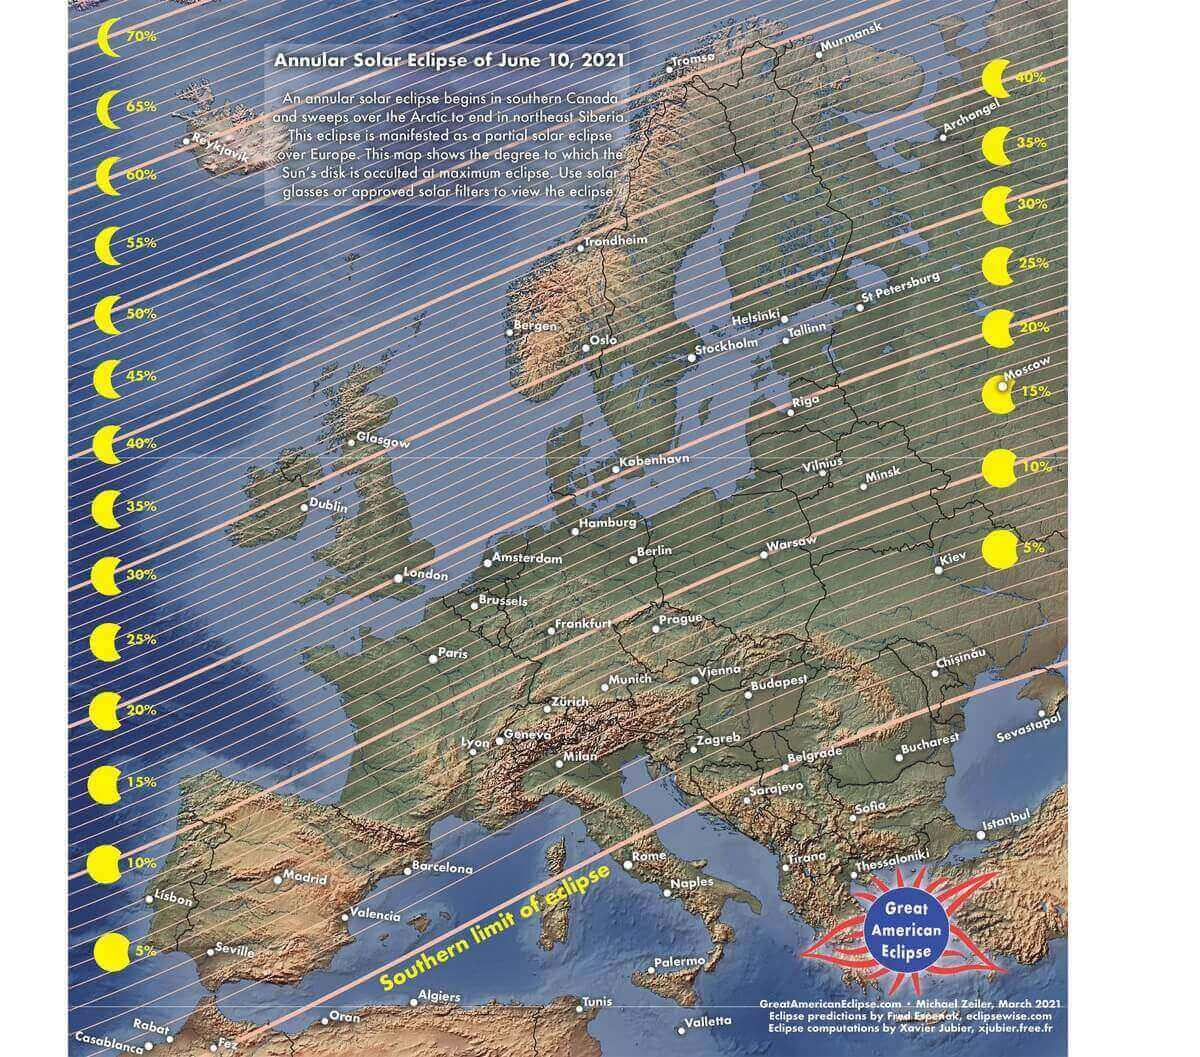 ring-of-fire-annular-solar-eclipse-2021-europe